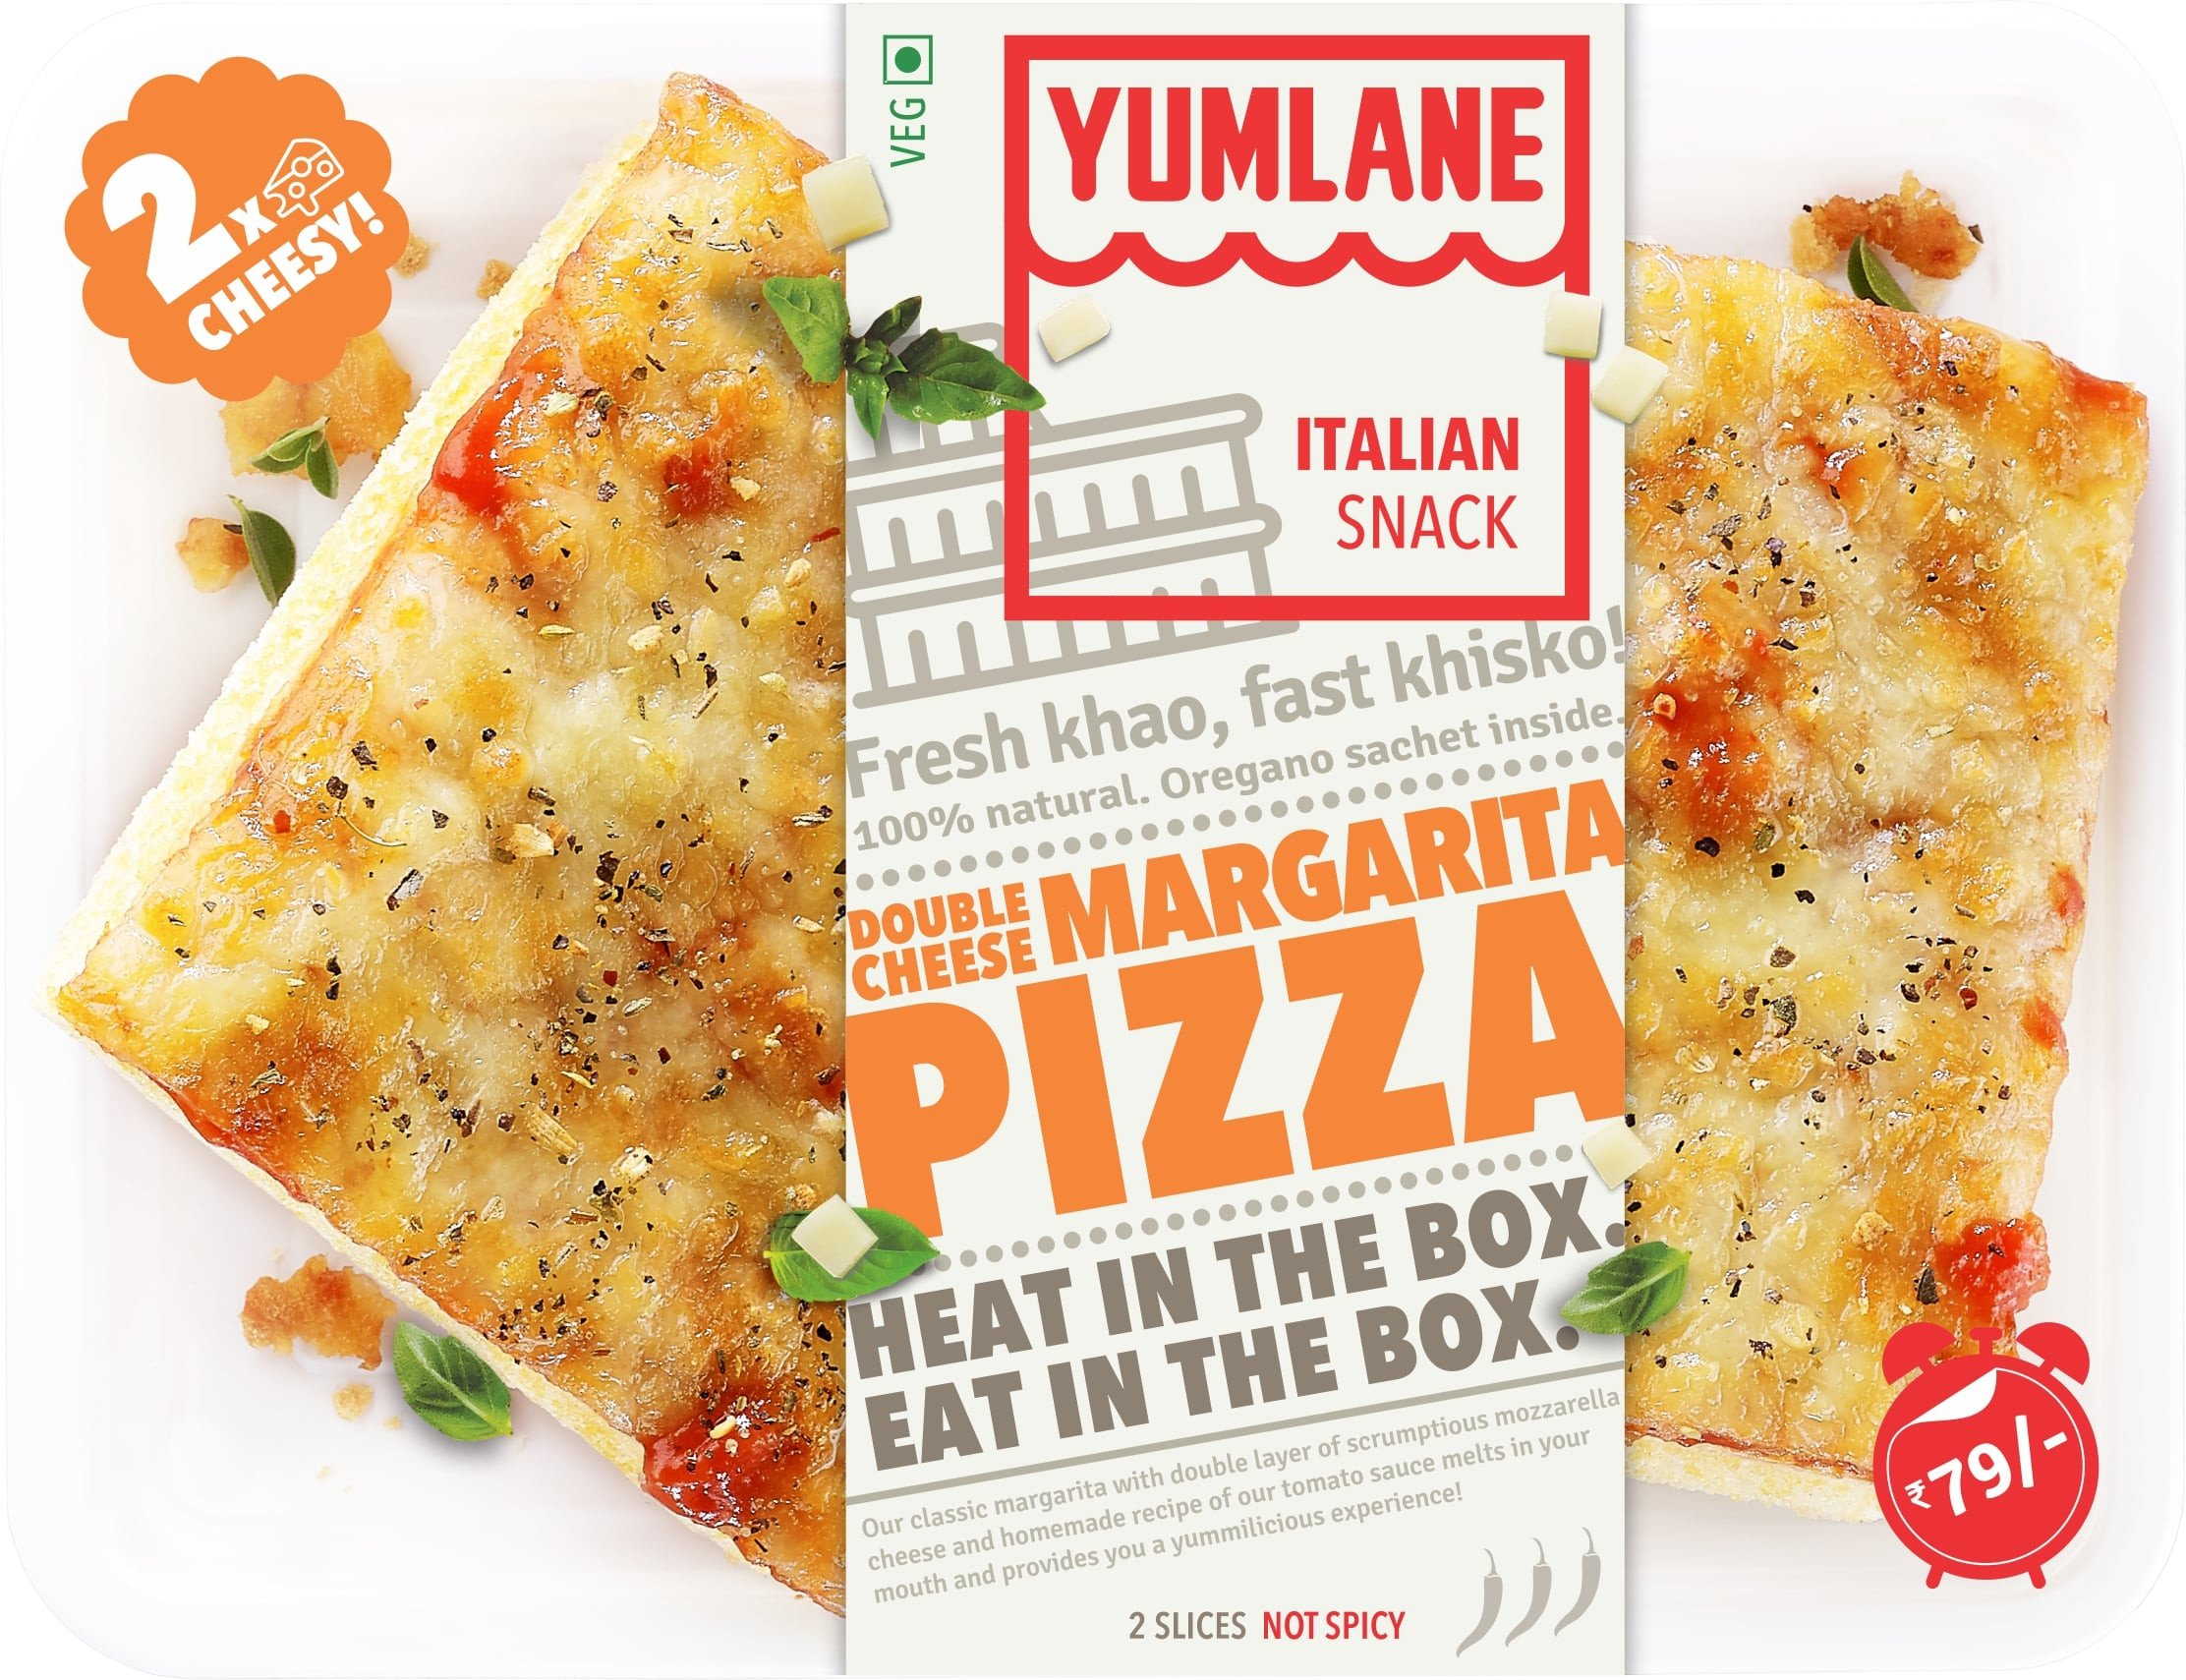 In a hurry but hungry? Yumlane's Heat N' Eat Pizzas Will Come To Your Rescue!